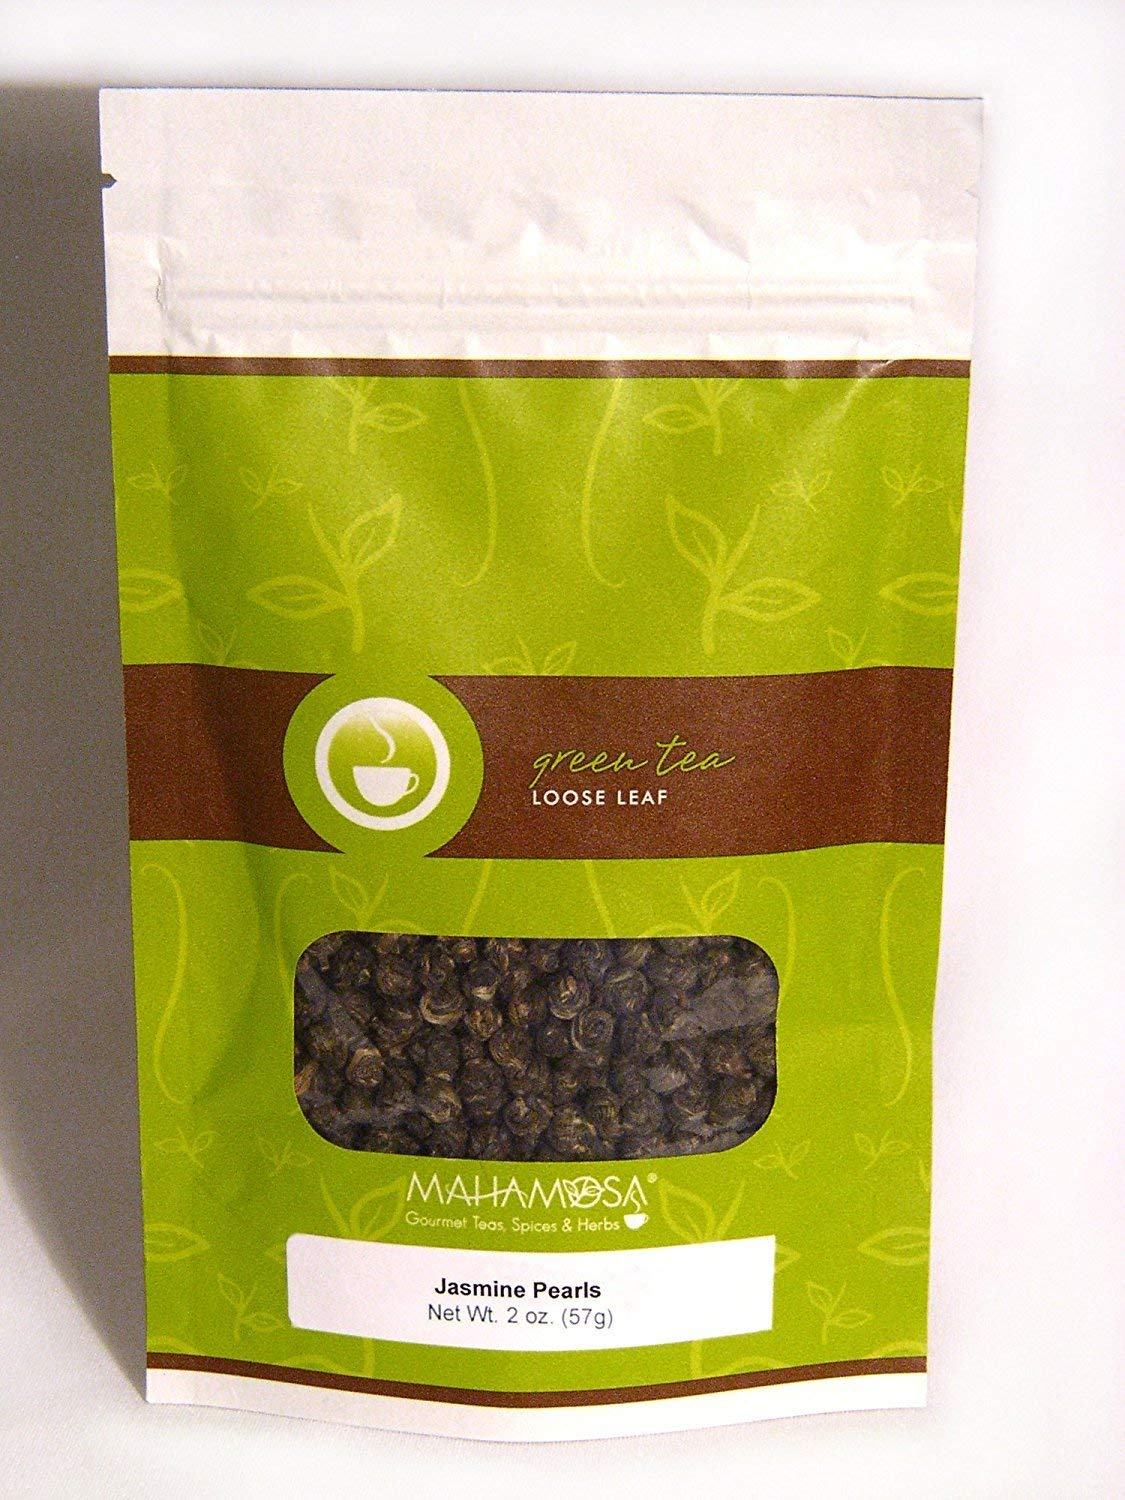 Mahamosa Jasmine Green Tea Loose Leaf (Looseleaf)- Jasmine Pearls 2 oz, Loose Jasmine Tea